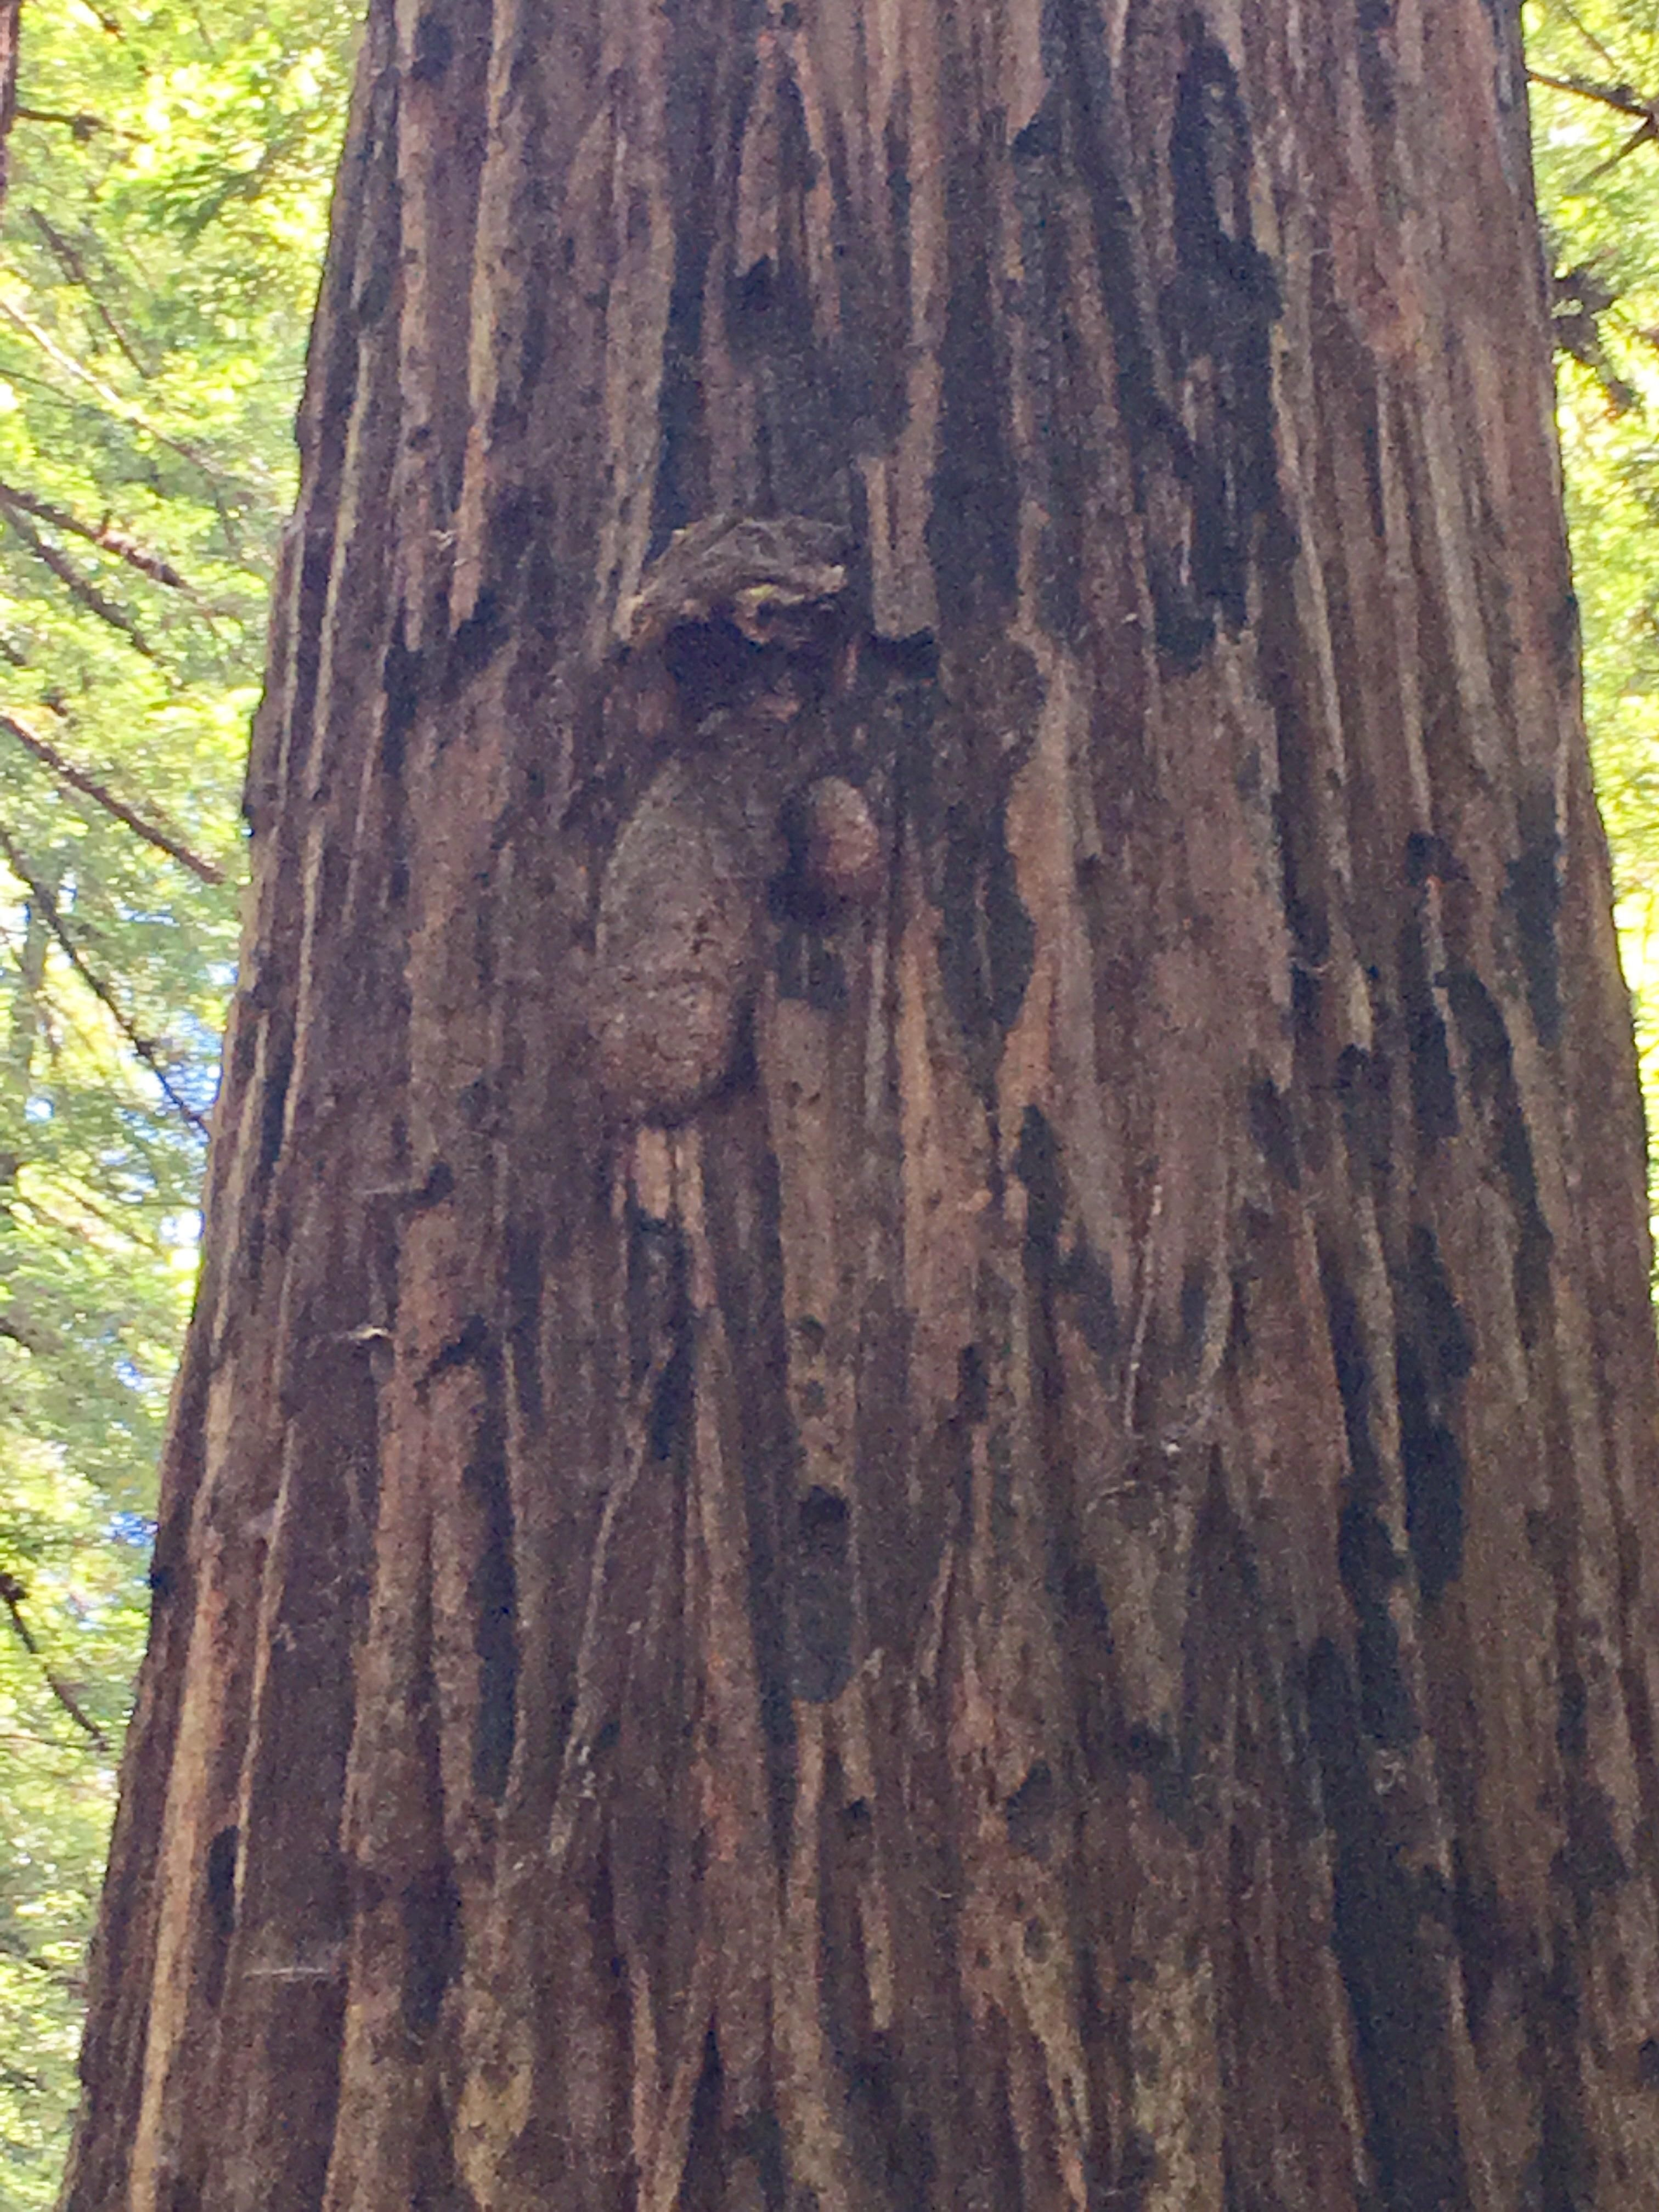 The Colonel Armstrong redwood tree in CA has a giant four foot flaccid penis about 20 feet up its 308 foot trunk.